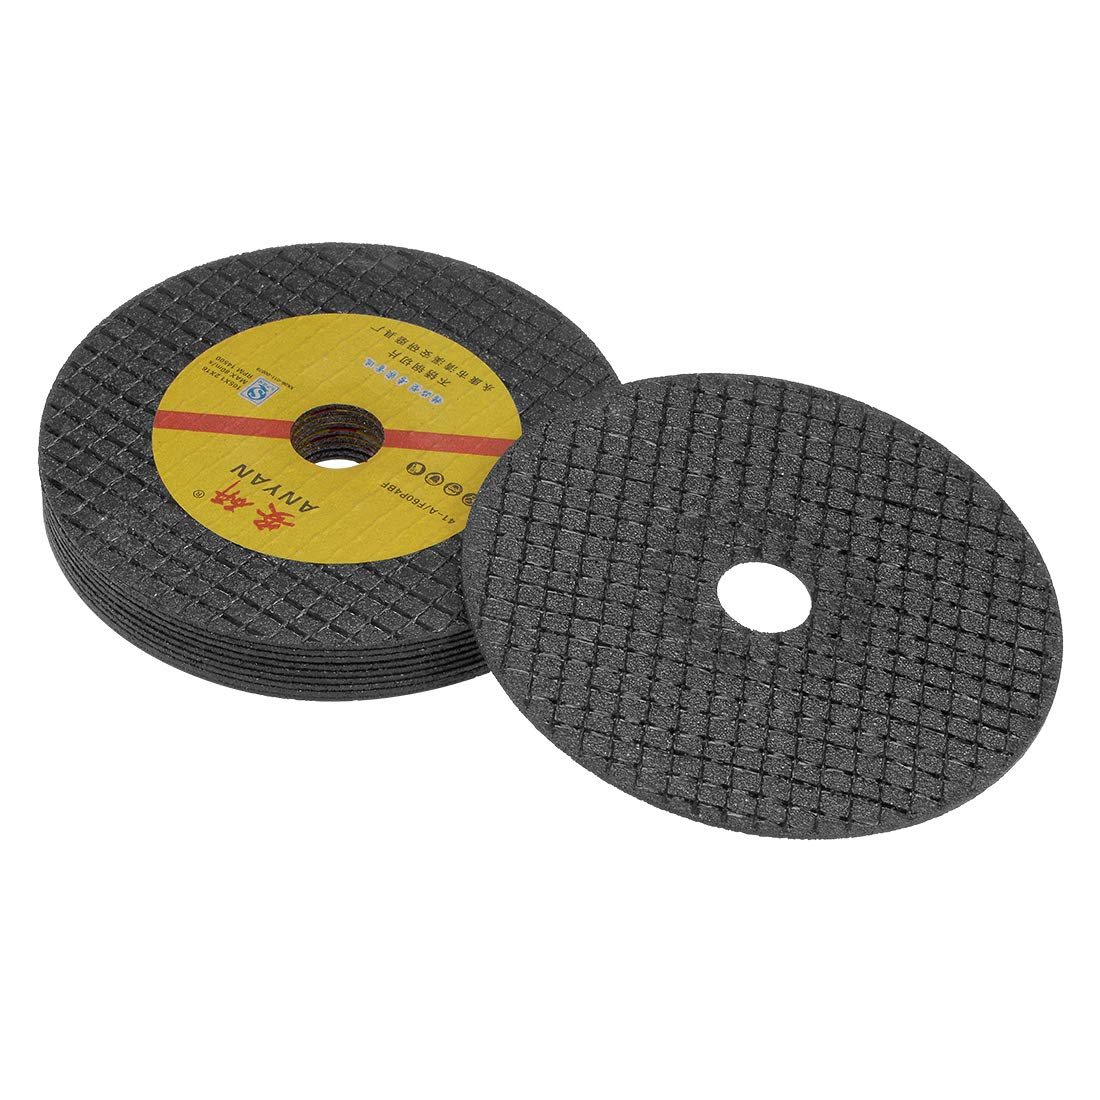 uxcell/® 4 Inch Cut-Off Wheels Cutting Discs for Metal and Stainless Steel Black 20 Pcs